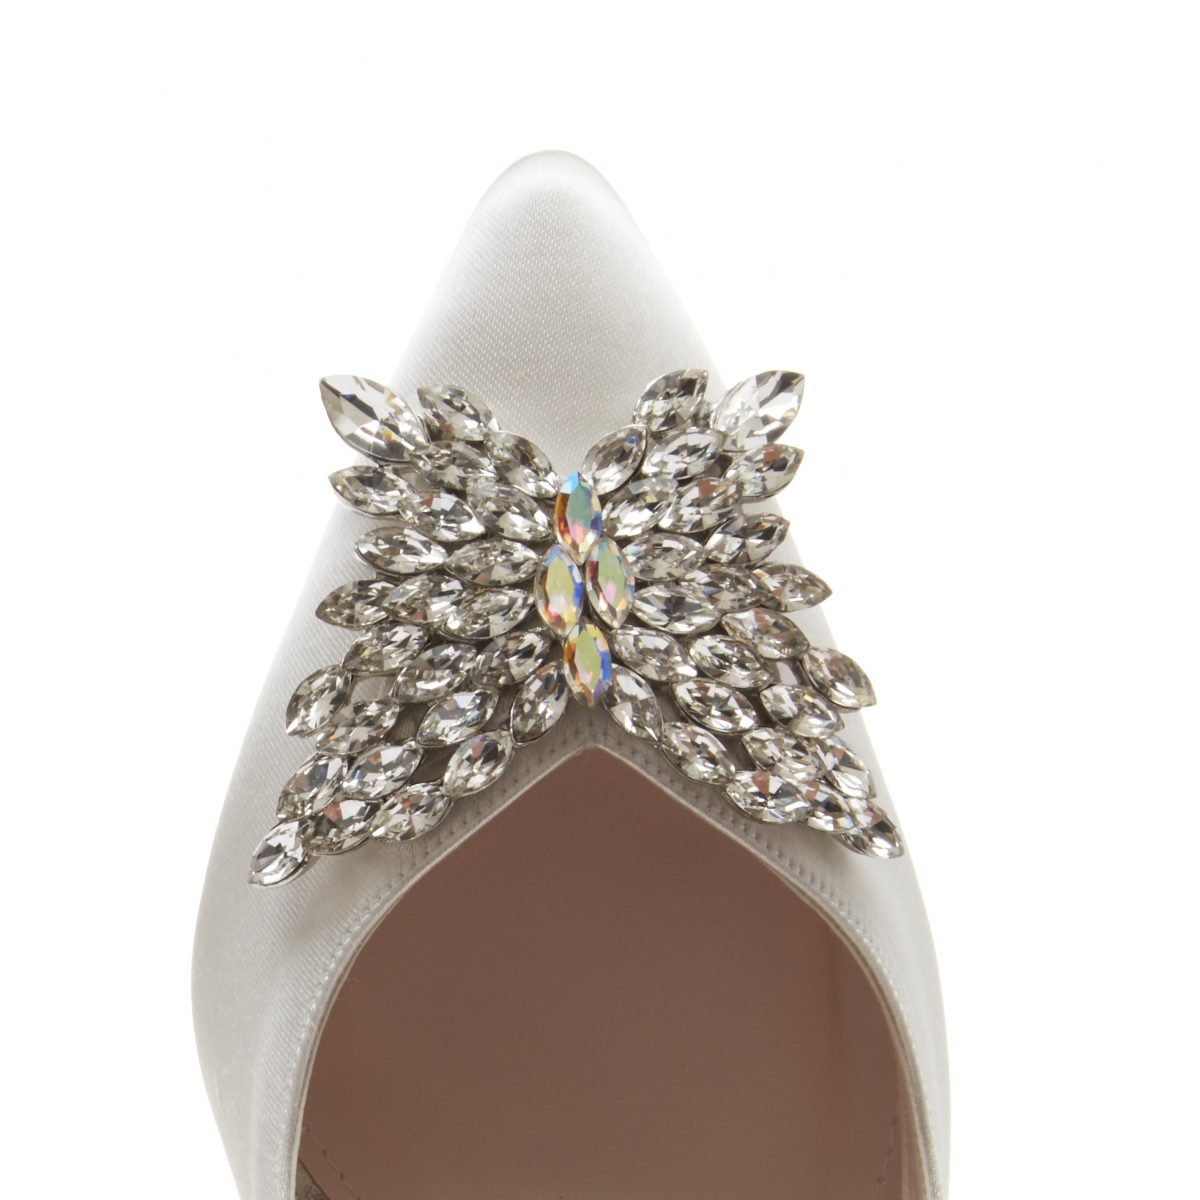 Rainbow Club Nelly - Ivory Satin Court Shoe 3